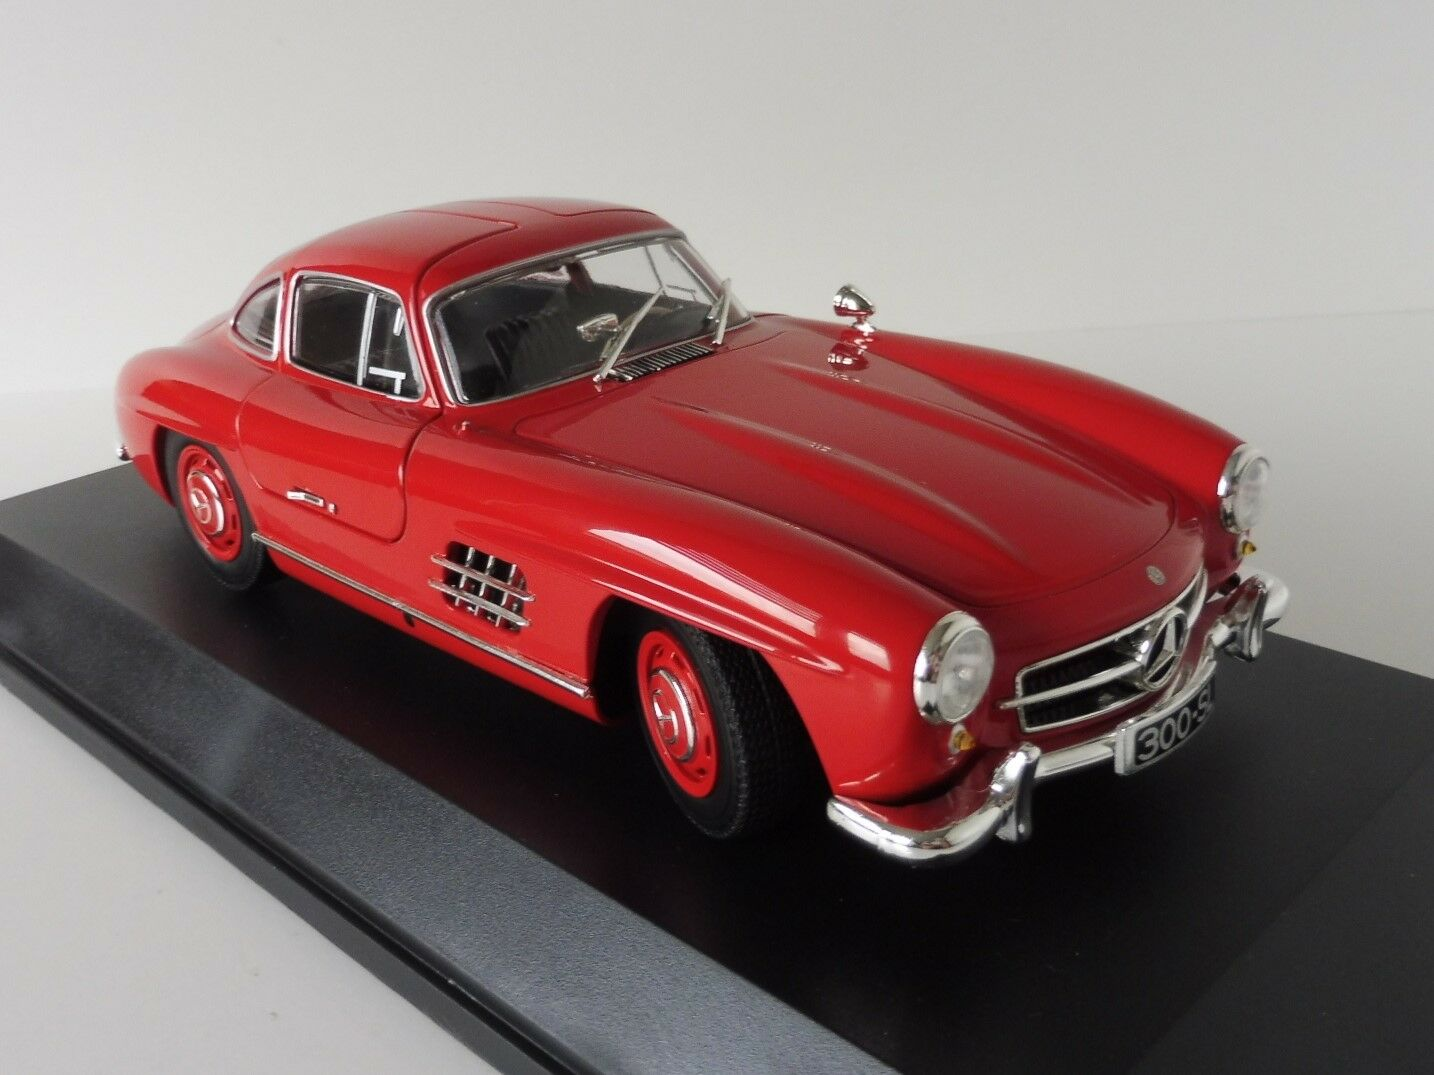 Mercedes-Benz 300 SL 1955 Rouge 1 18 MINICHAMPS 110037211 PMA w198 Mercedes